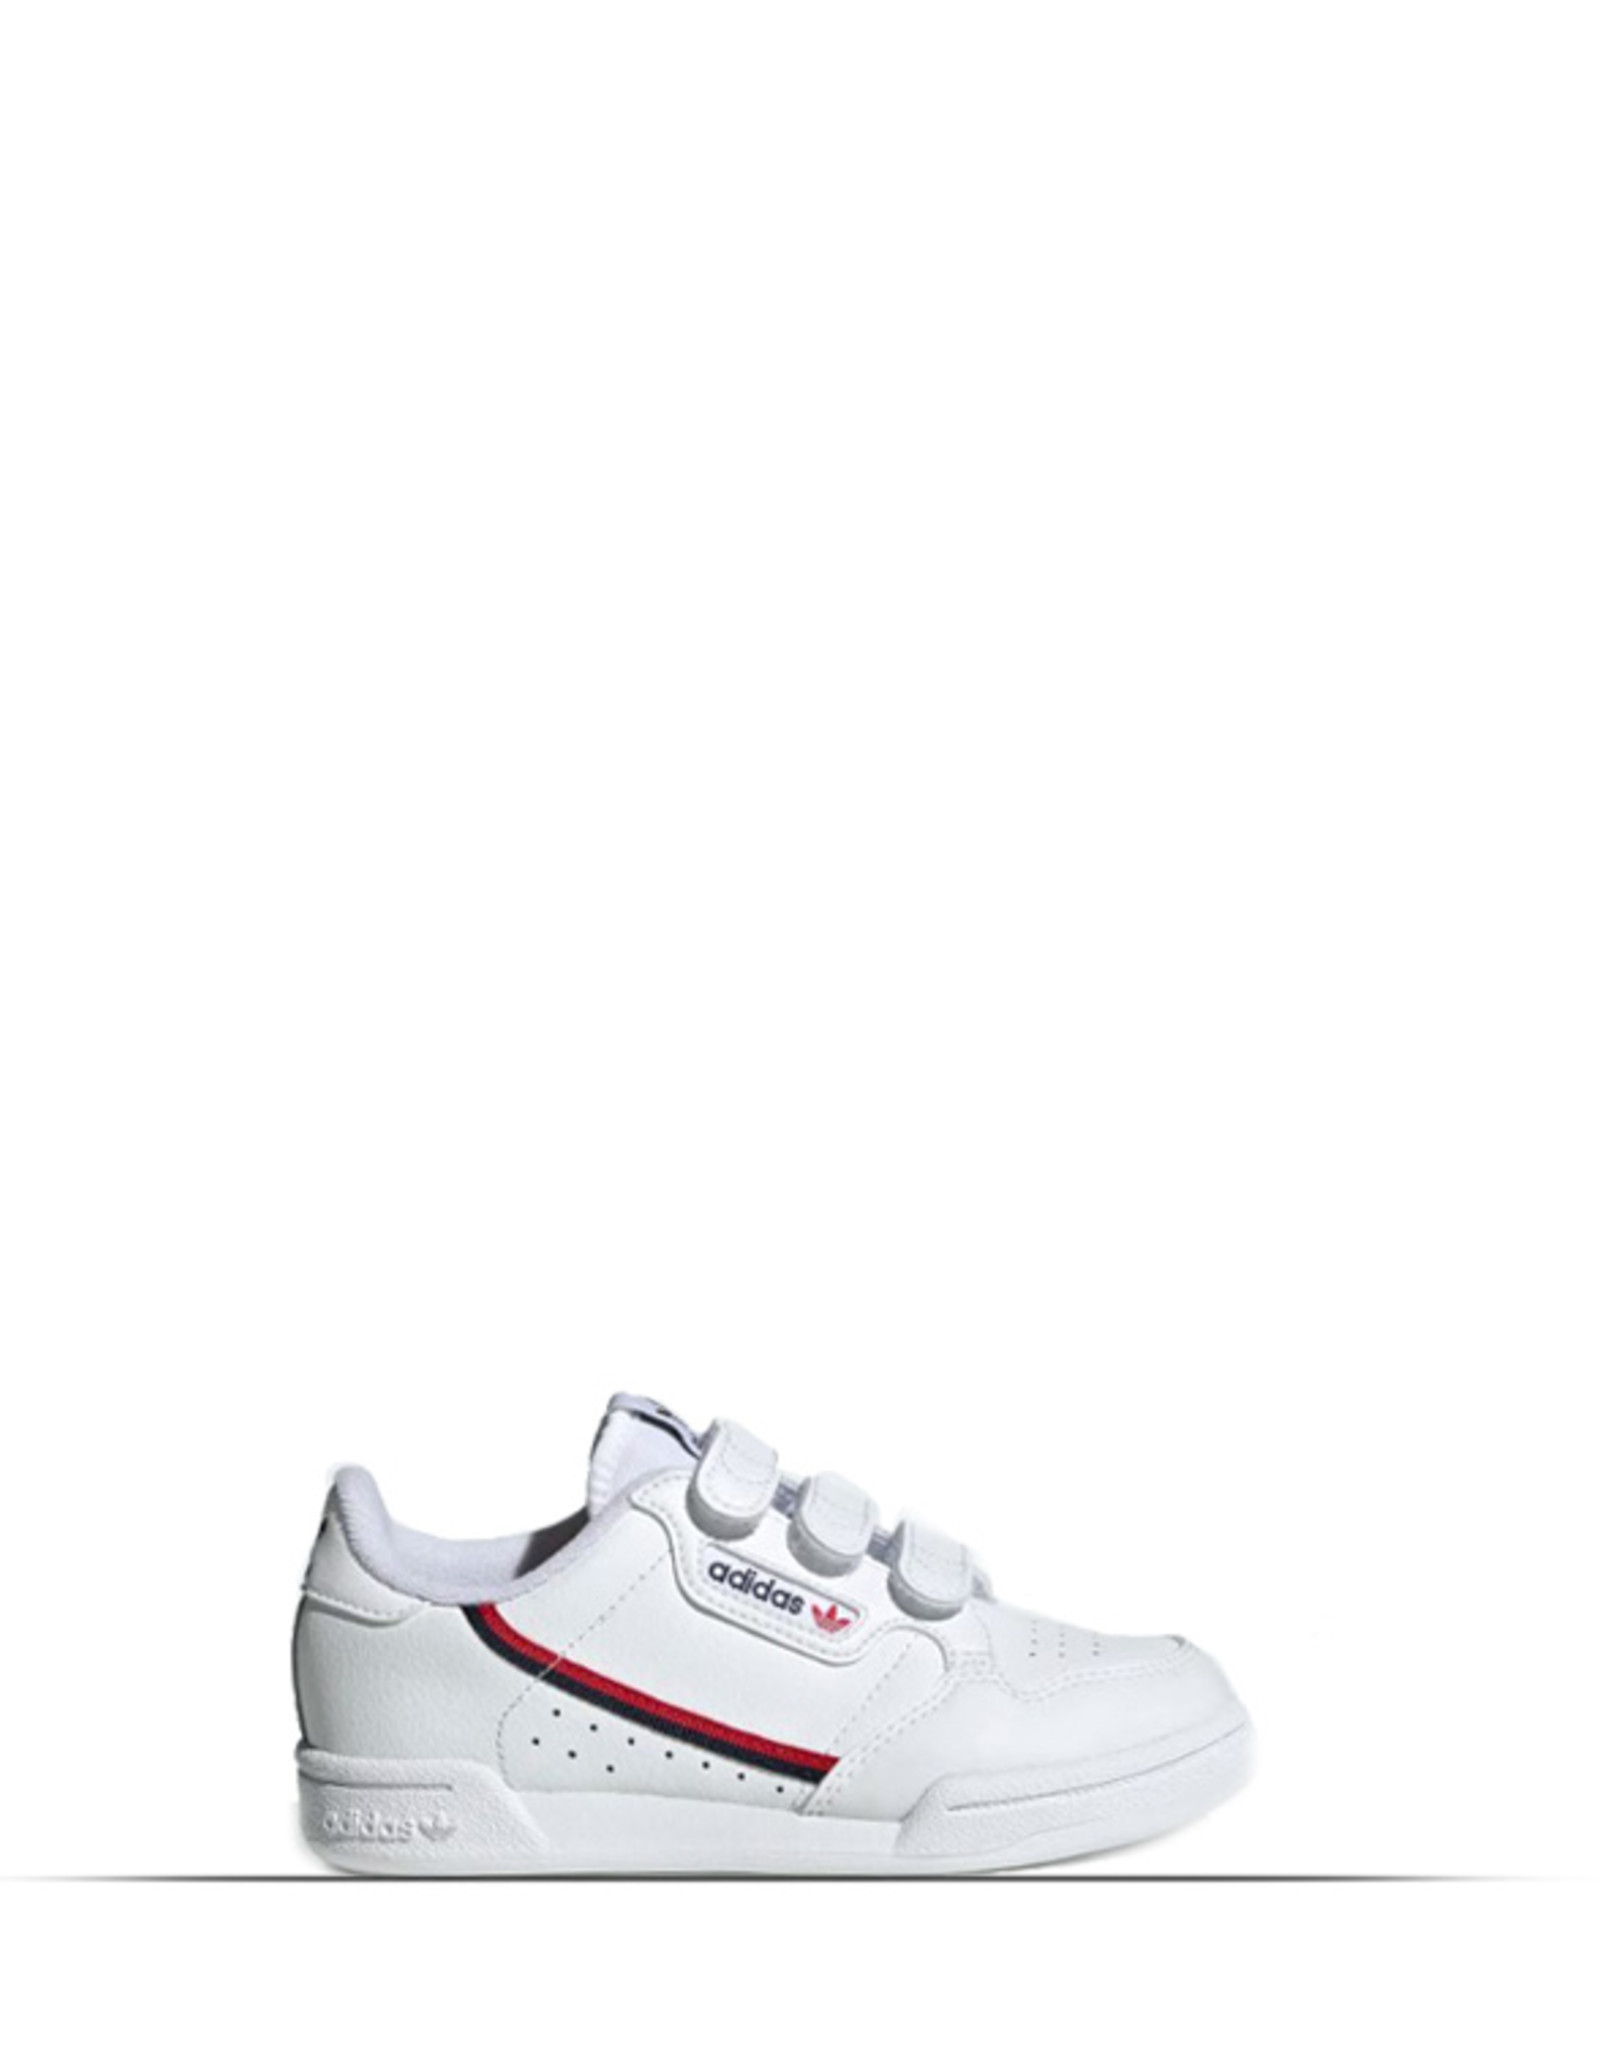 ADIDAS CONTINENTAL 80 WHITE SCARLET RED KIDS